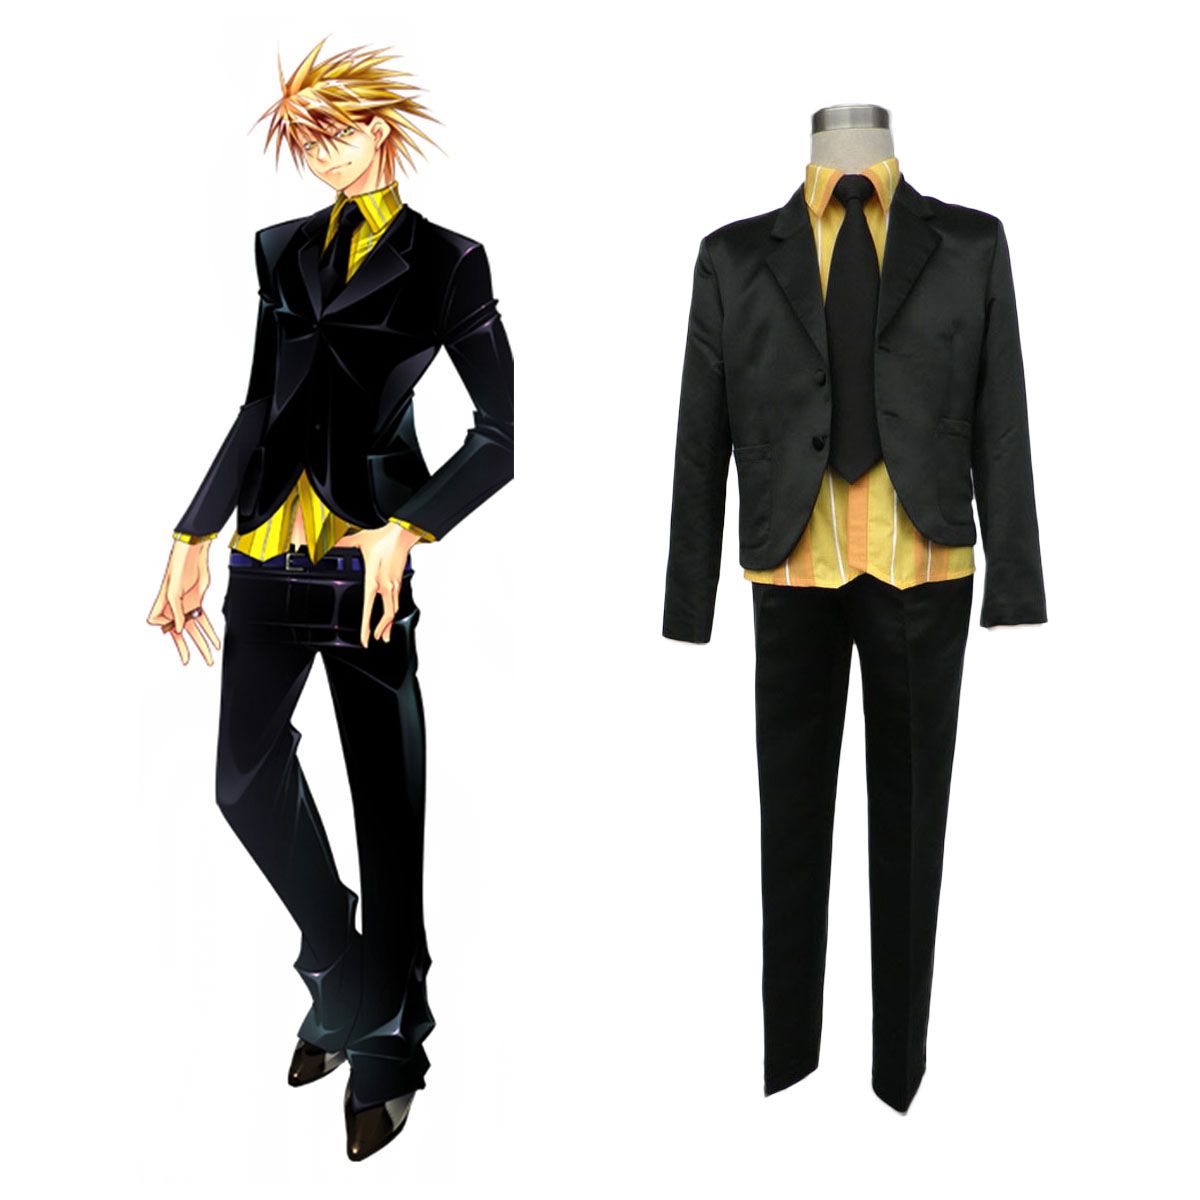 Lucky Dog1 Gian·Carlo 2 Cosplay Costumes AU